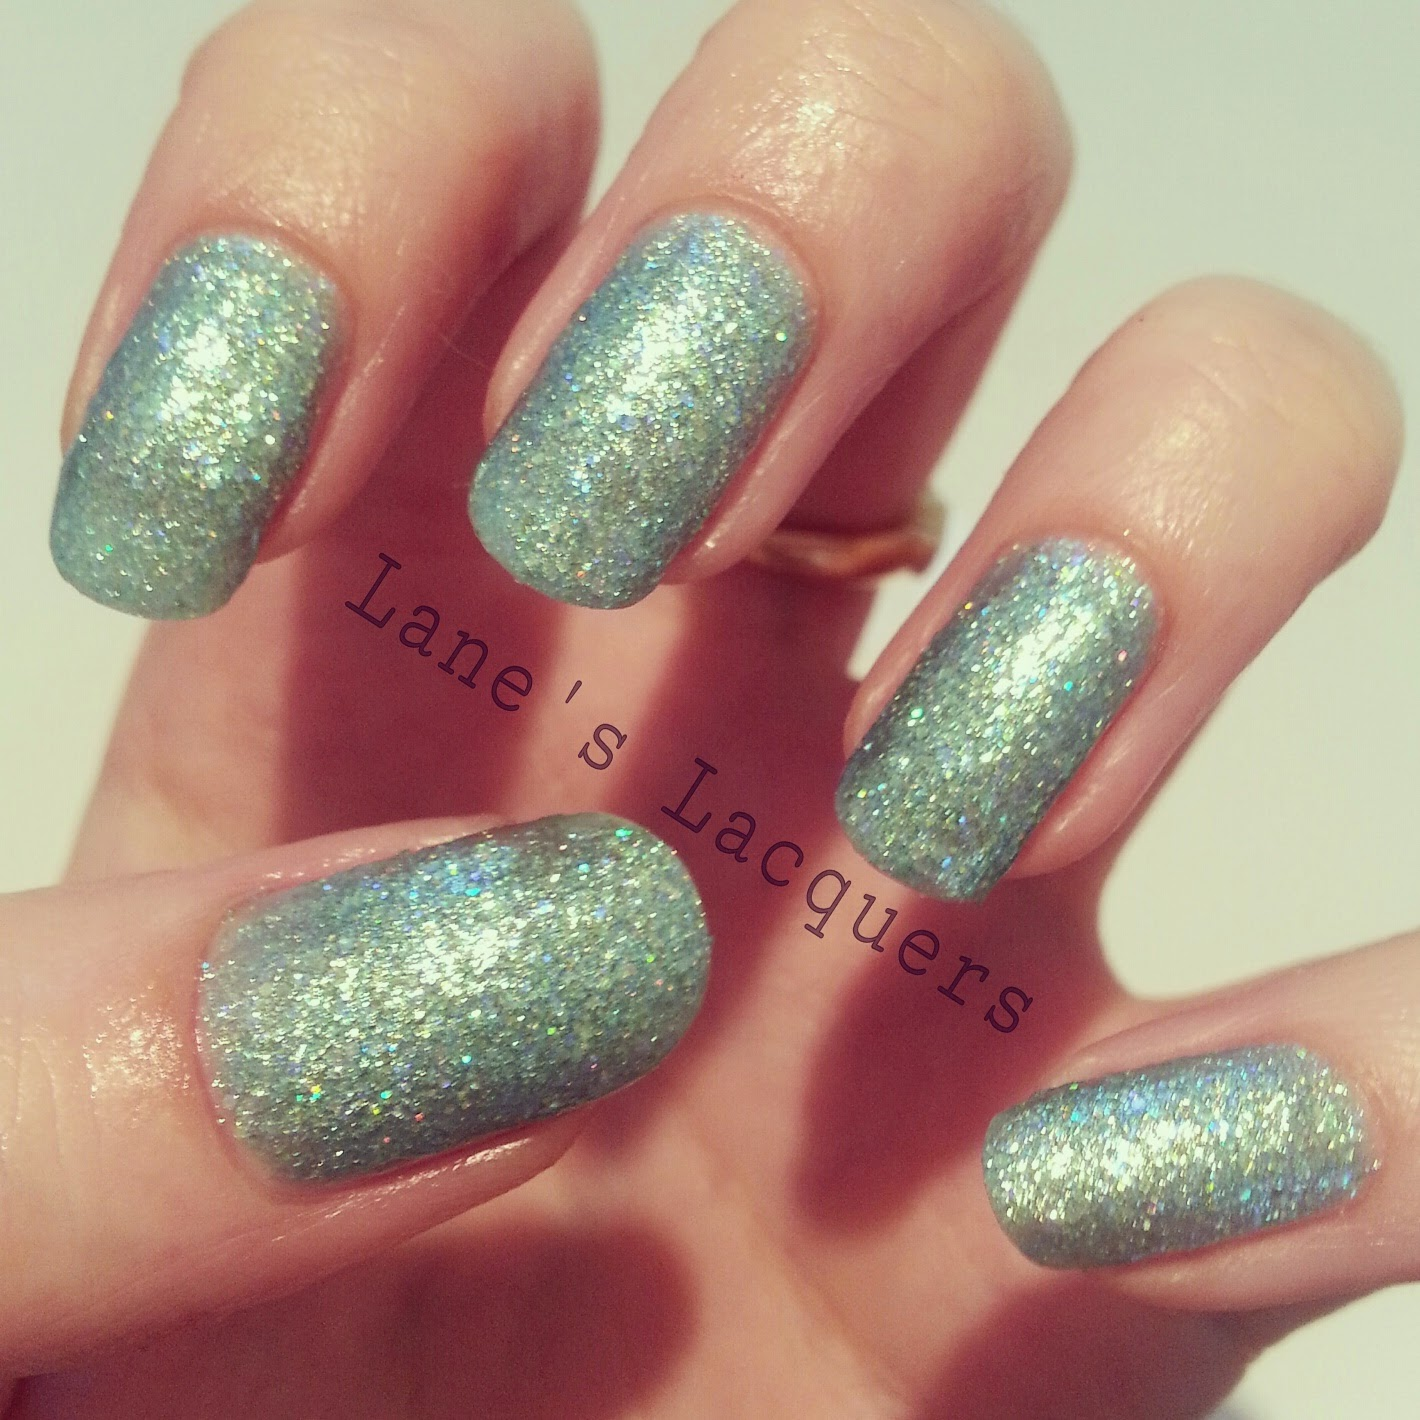 new-barry-m-glitterati-catwalk-queen-swatch-manicure